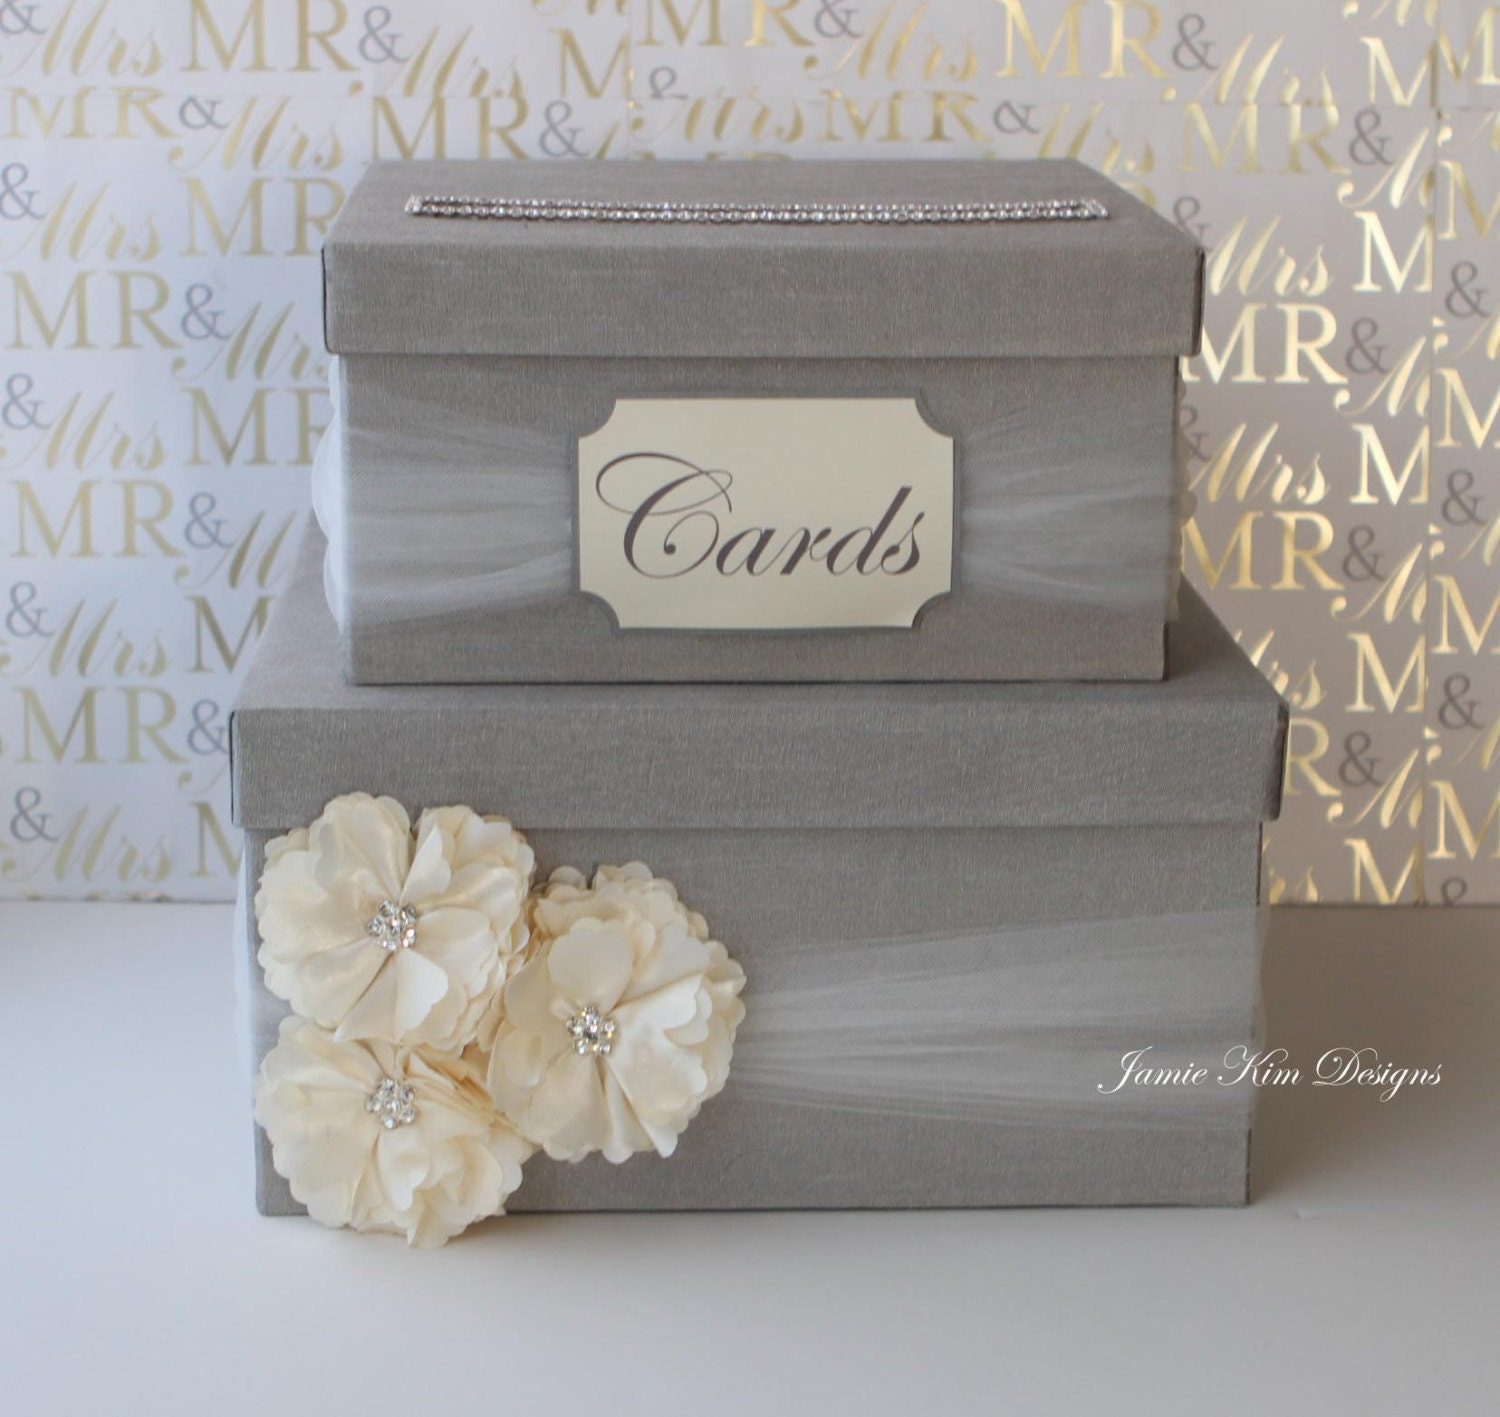 Card Boxes Wedding Gift Idea: Wedding Card Box Money Box Custom Card Box Custom Made To